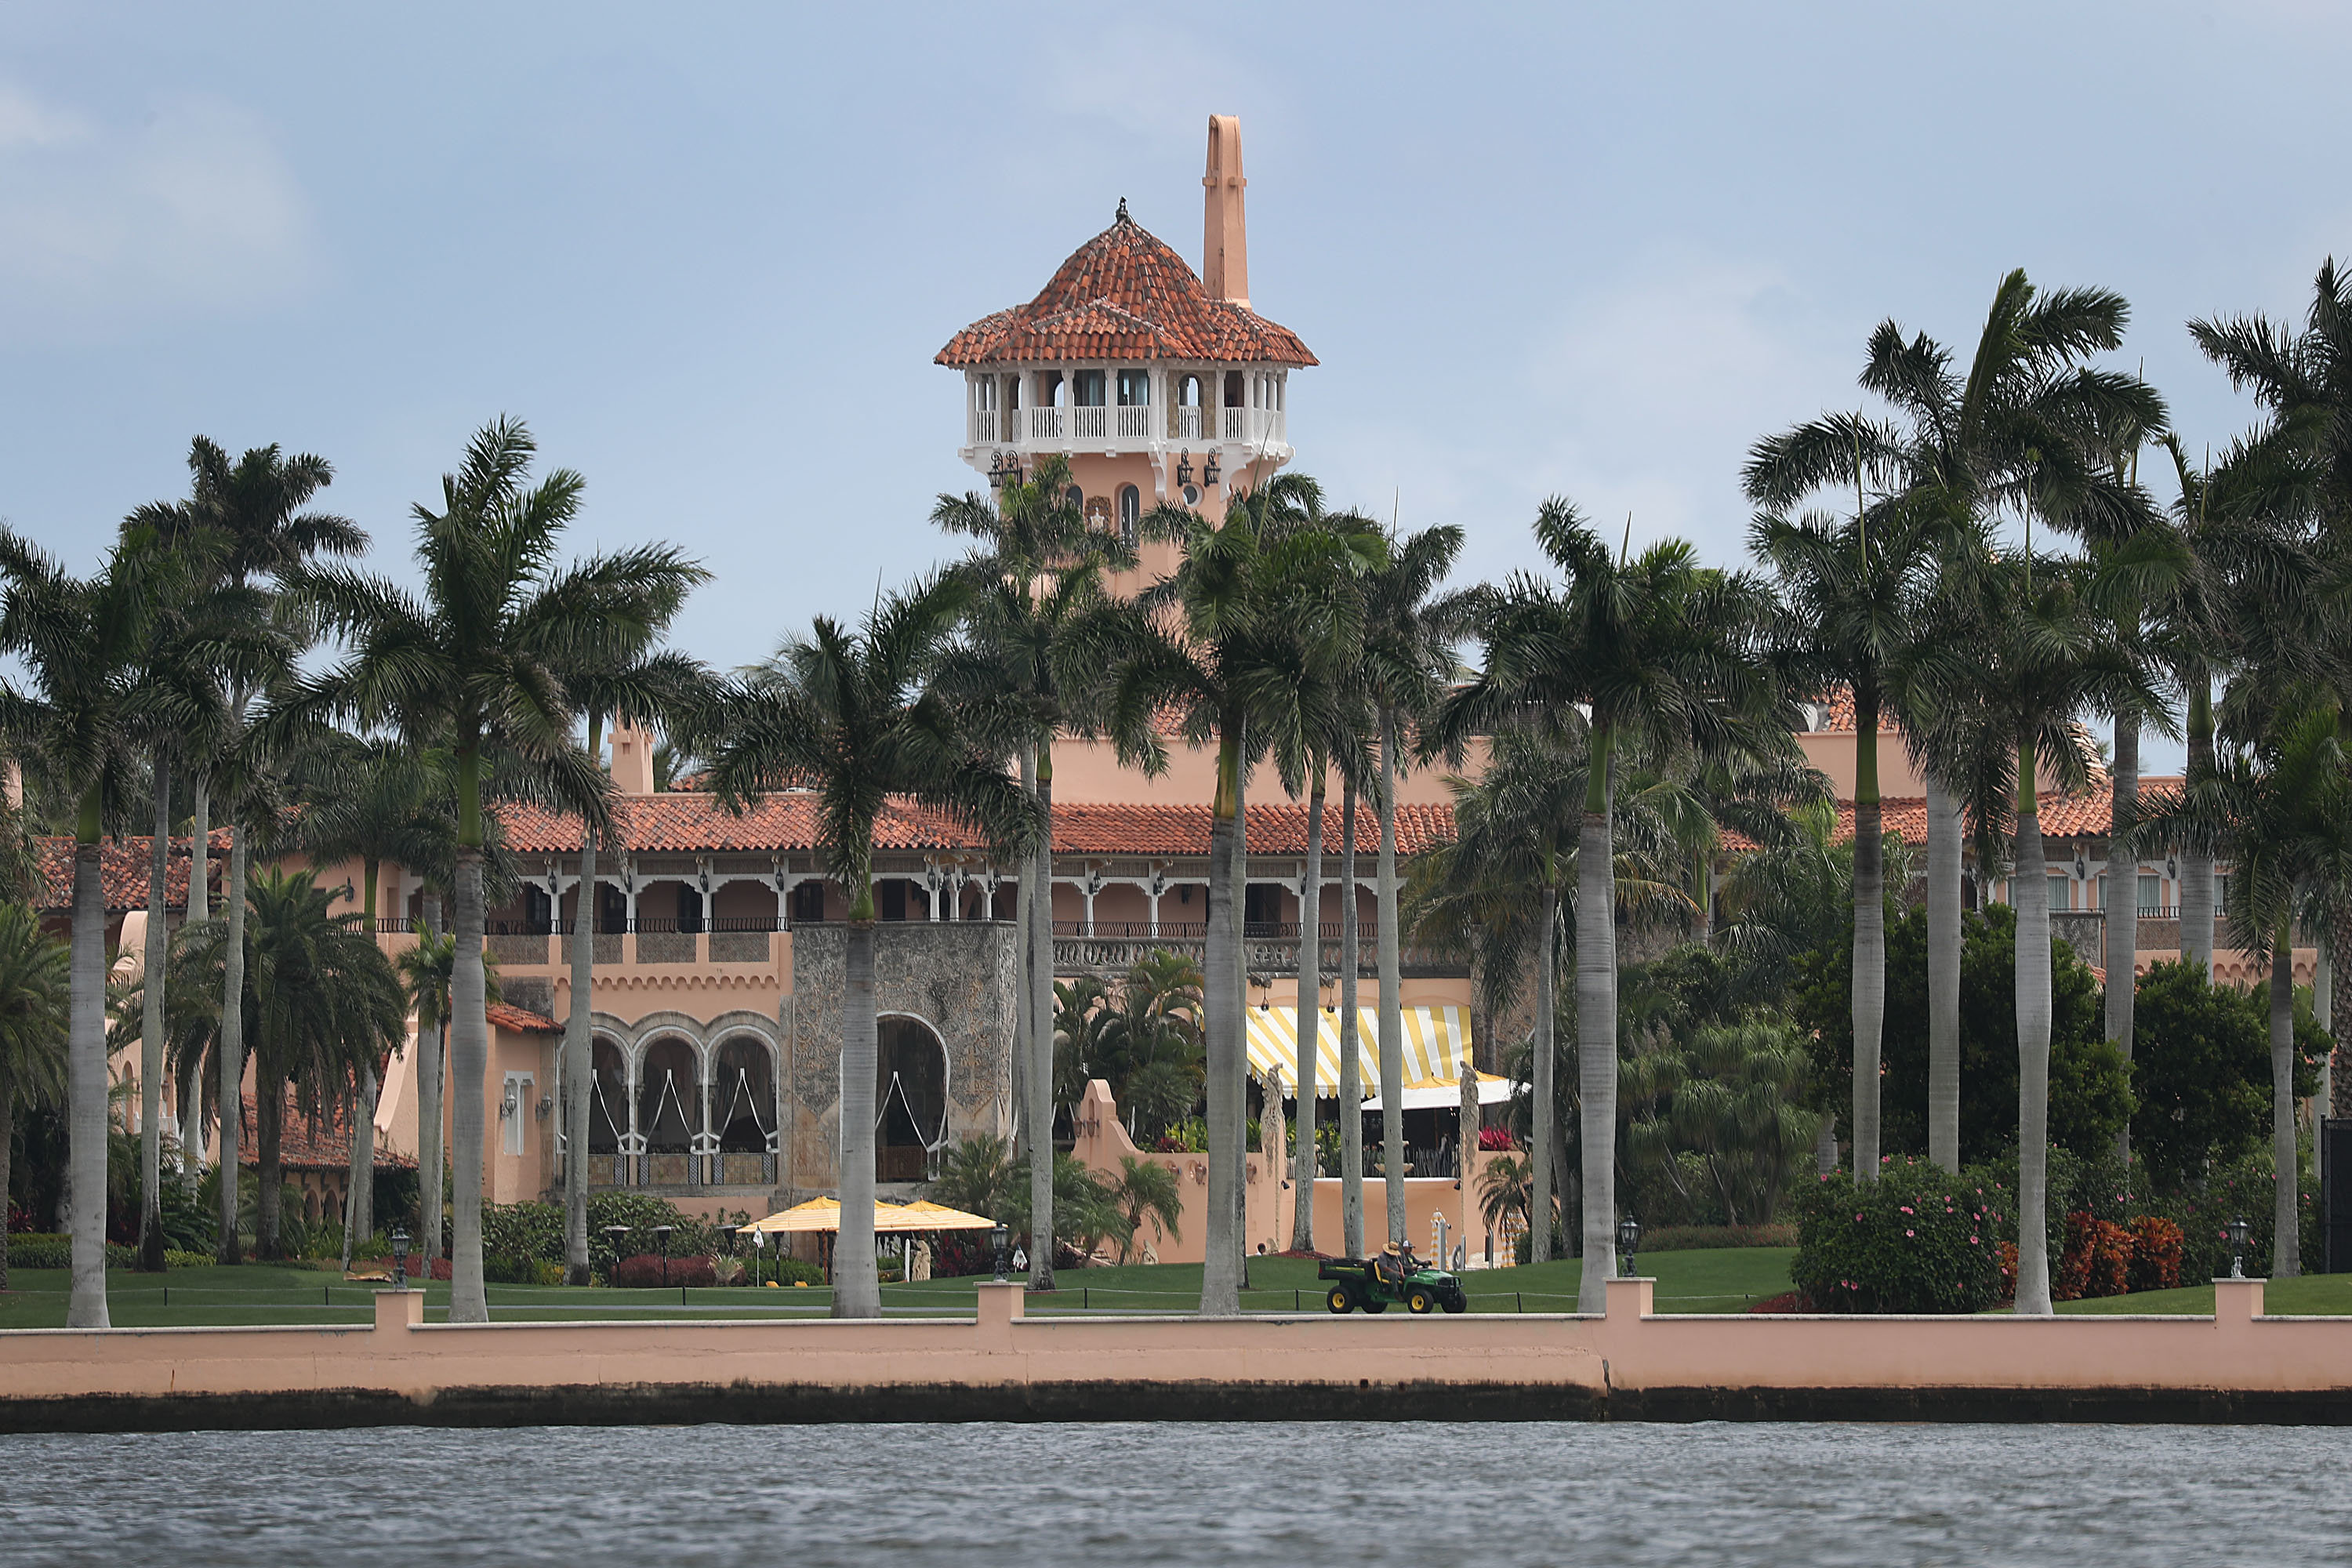 The event at Trump's Mar-a-Lago resort that Zhang said she was there to attend had been canceled before she left for the U.S.